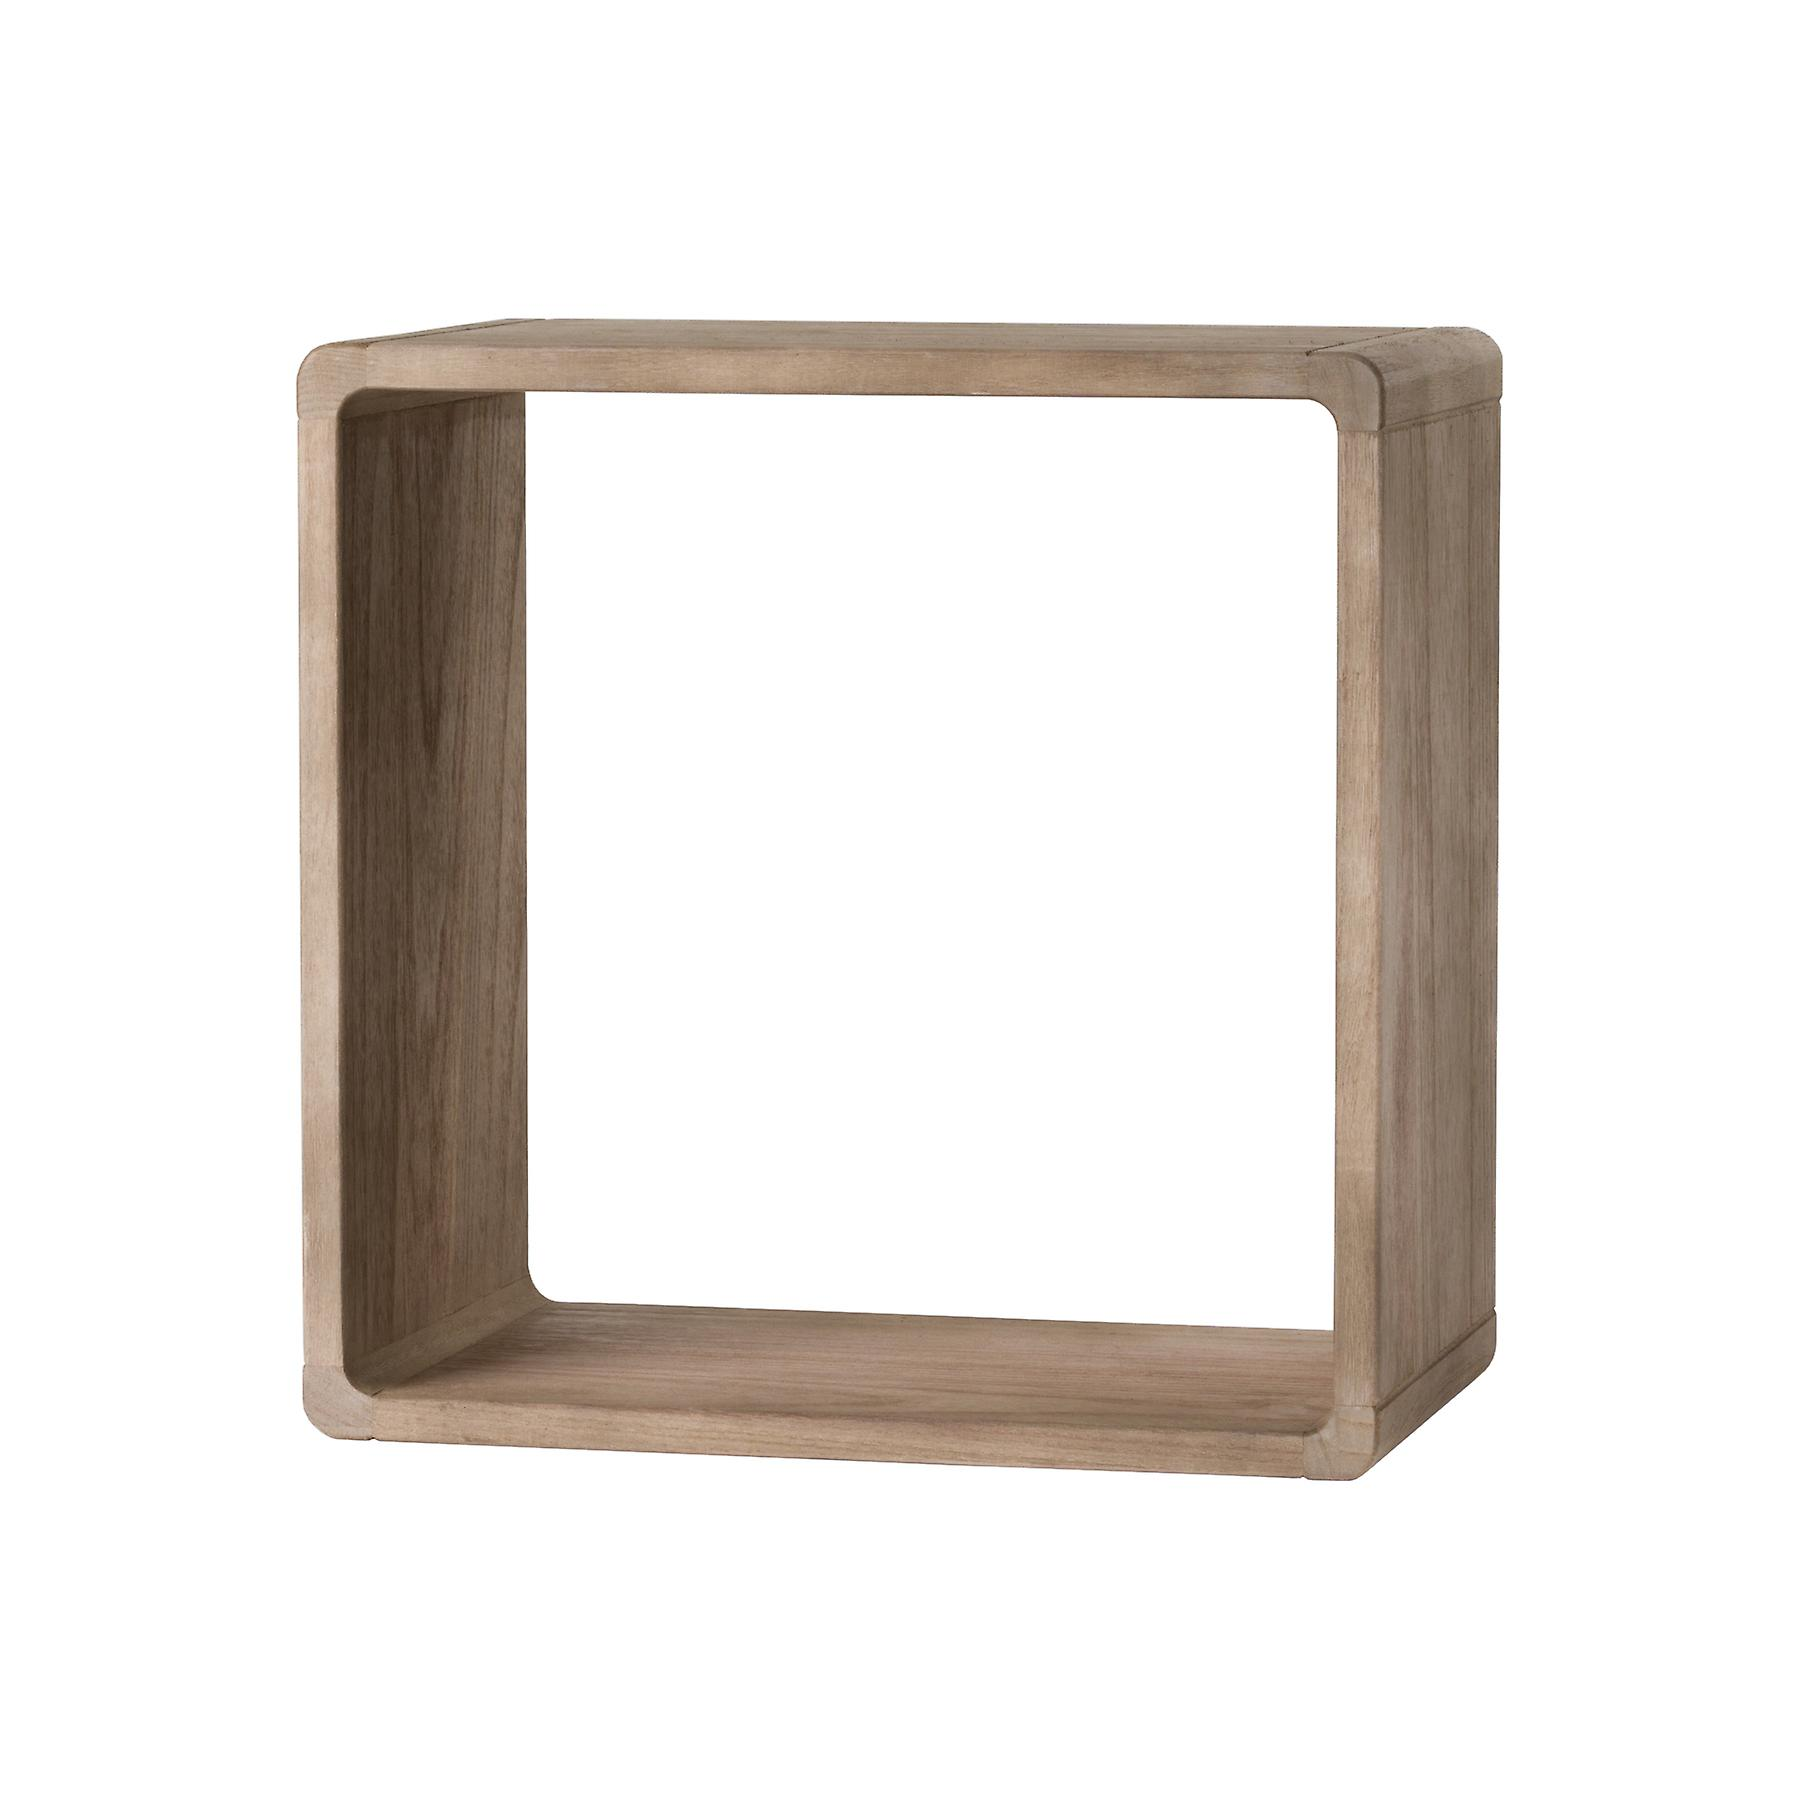 Display Of Cubesset 4 Wooden Hanging CedxorB